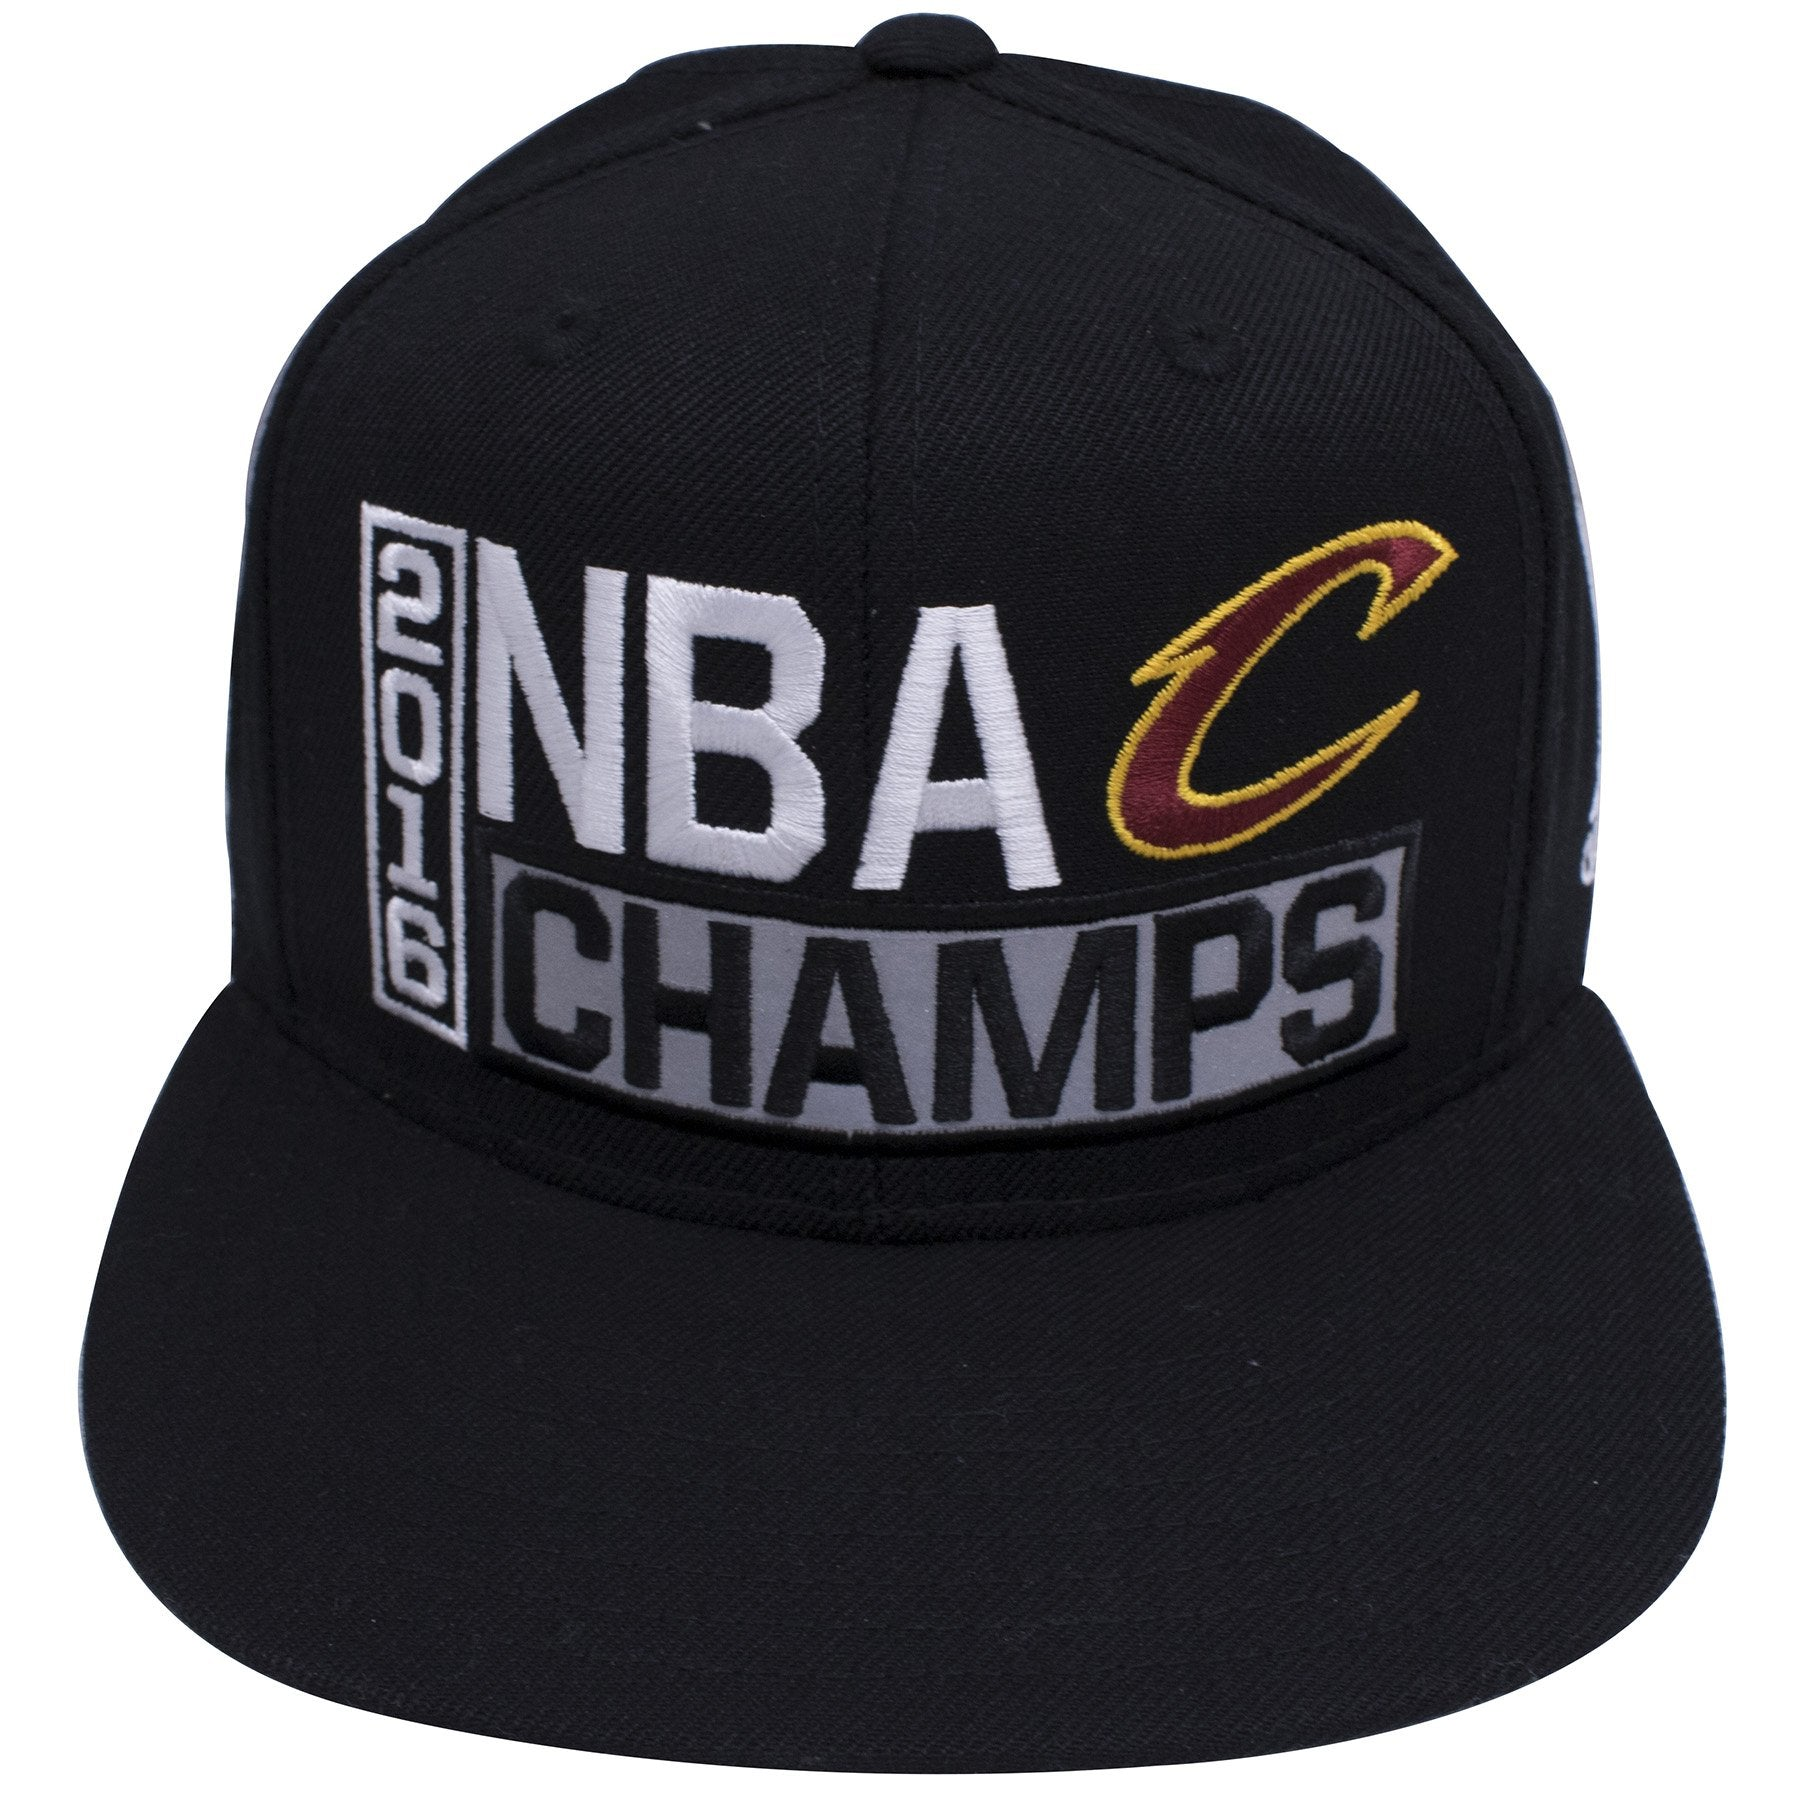 0a2a5bfc562f7 ... discount code for on the front of the 2016 nba champion cleveland  cavaliers snapback hat are